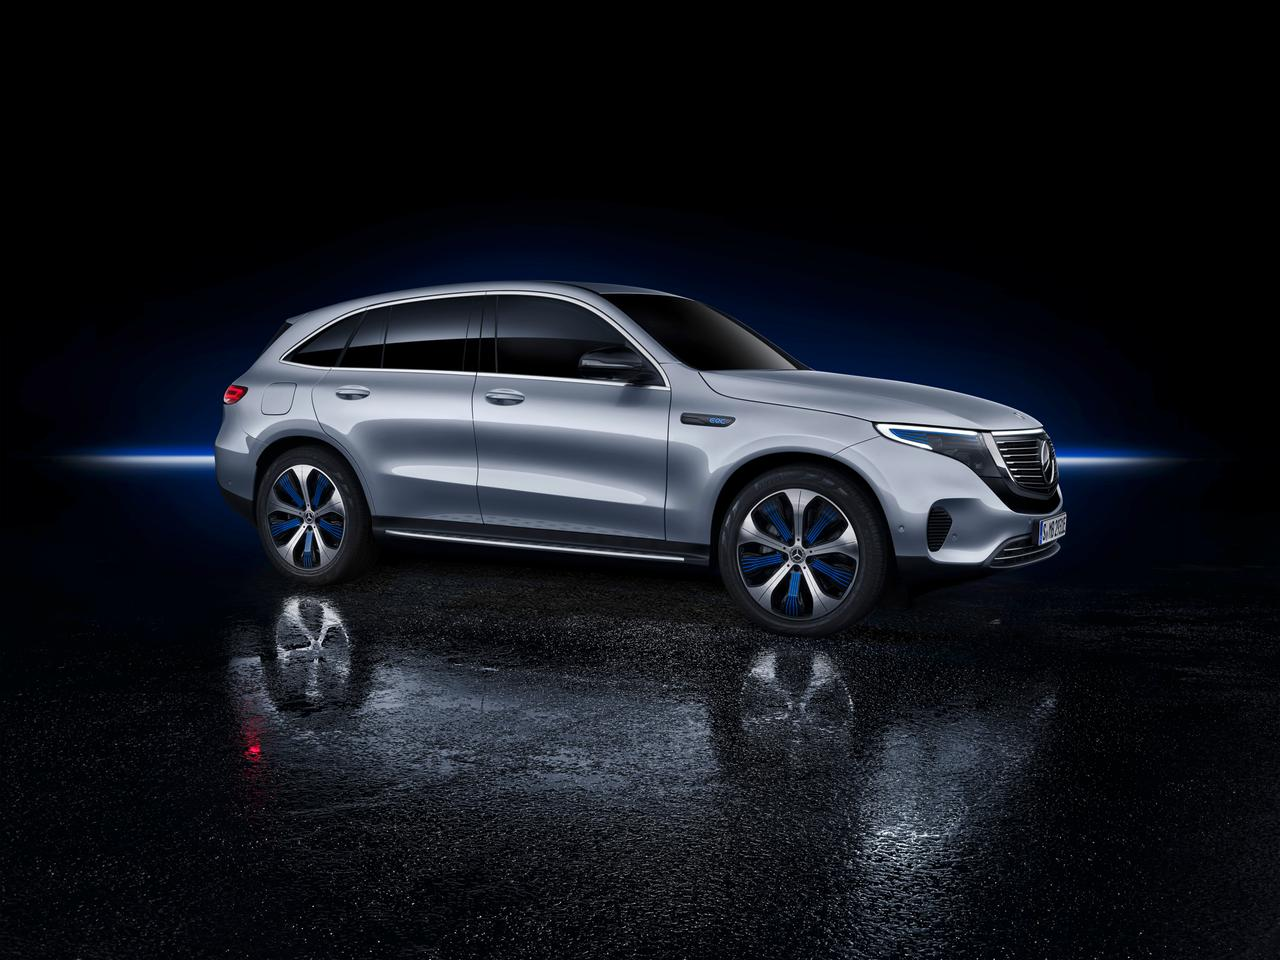 Mercedes-Benz EQC: sleek side profile with electric blue wheel accents